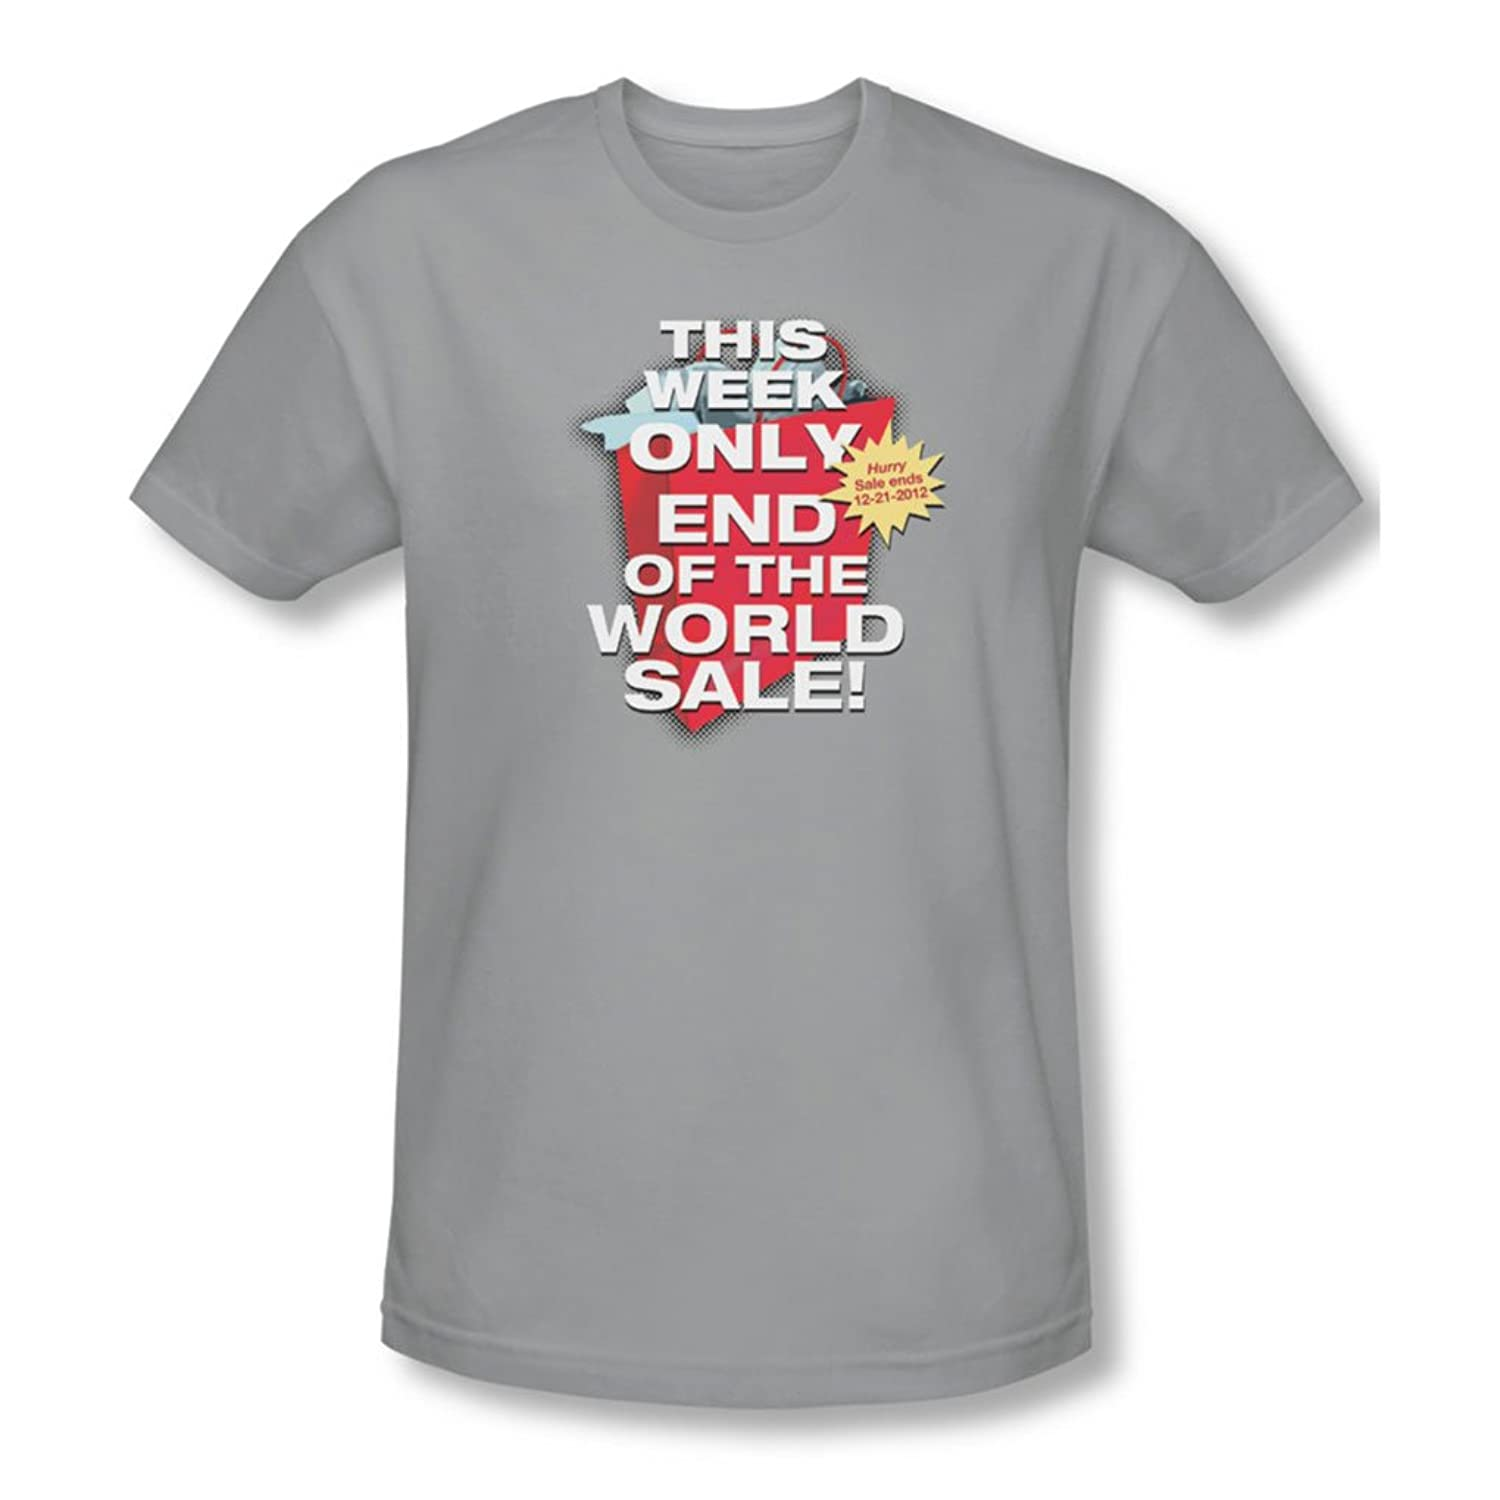 End Of The World Sale - Mens Slim Fit T-Shirt In Silver